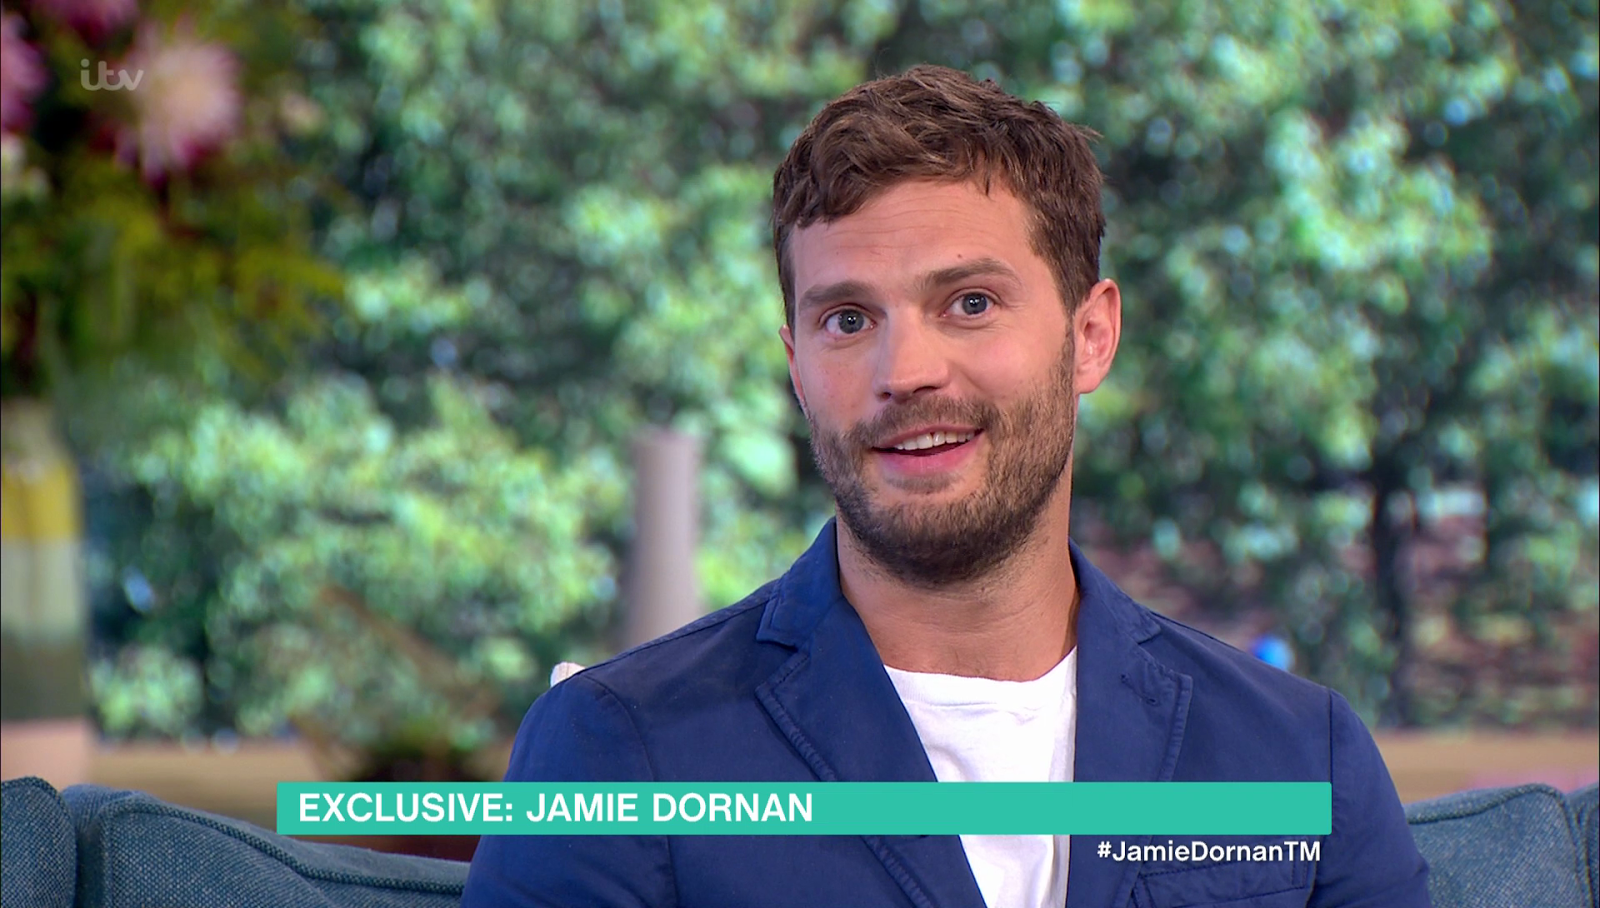 Jamie Dornan discusses family life: 'It's the most magical thing in the world'